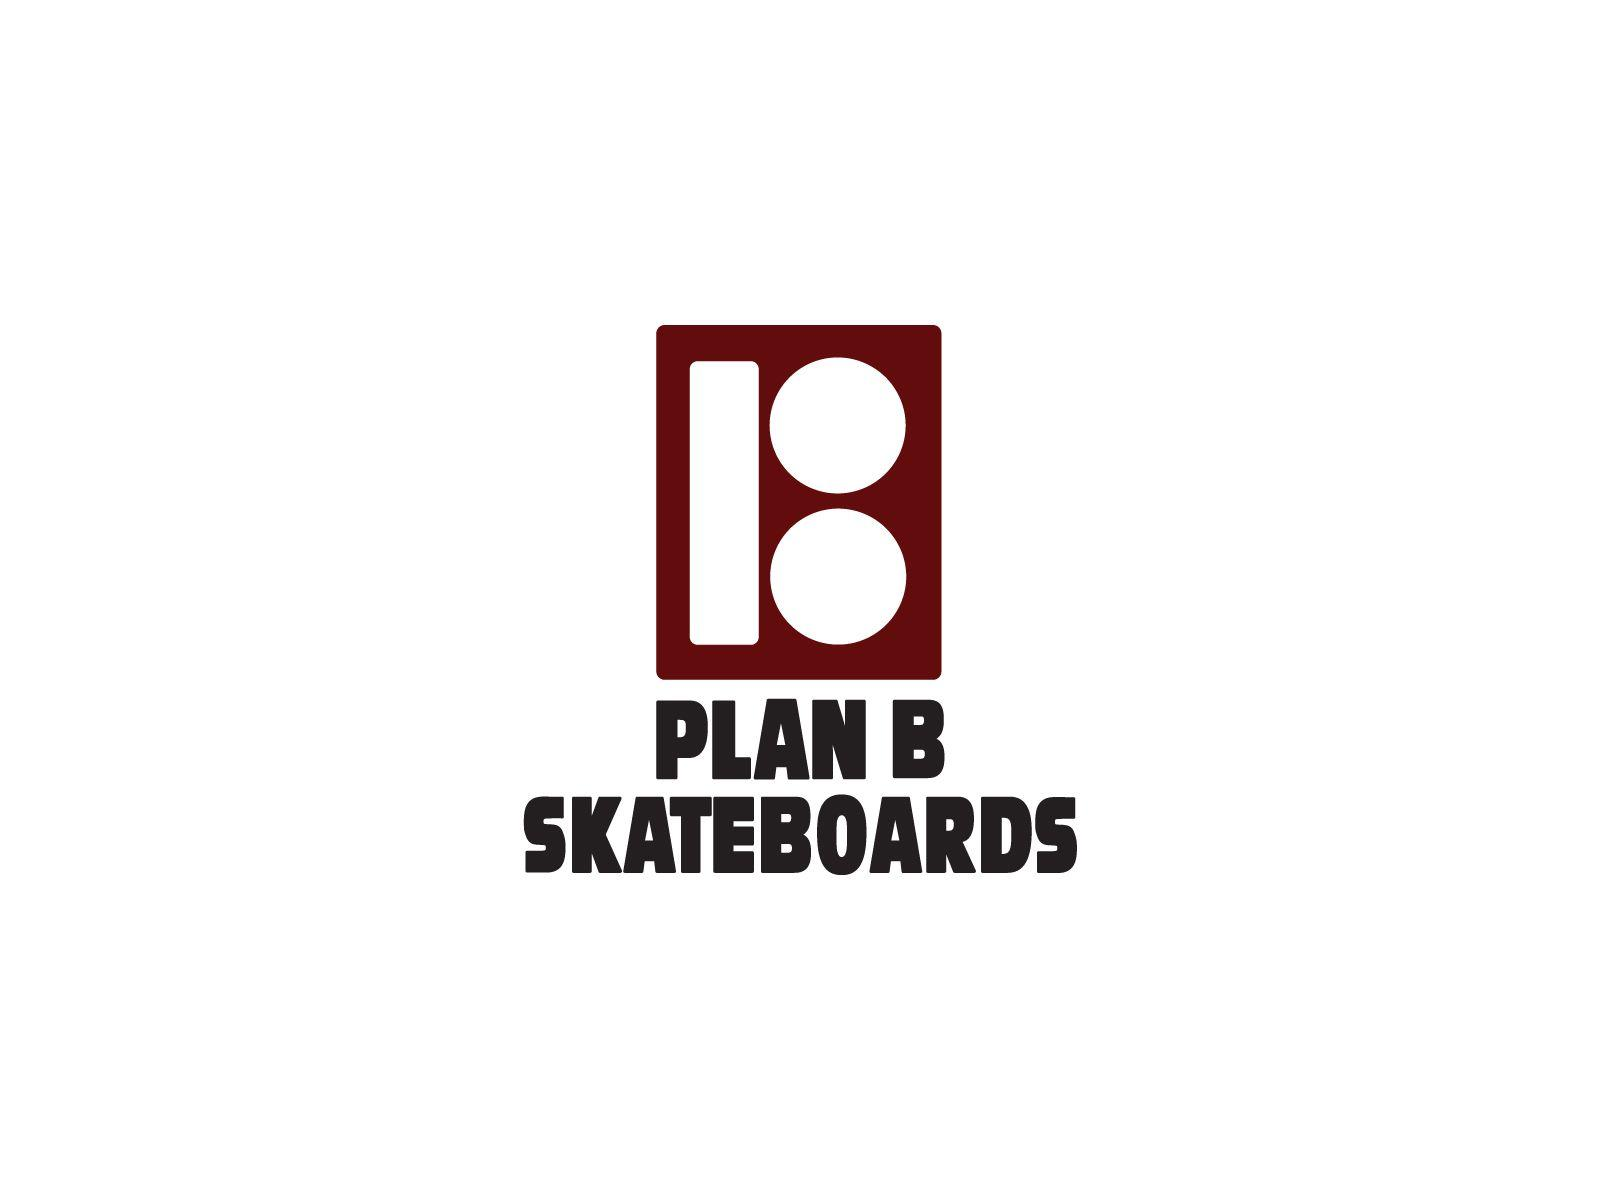 Wallpapers For > Skateboard Wallpapers Plan B